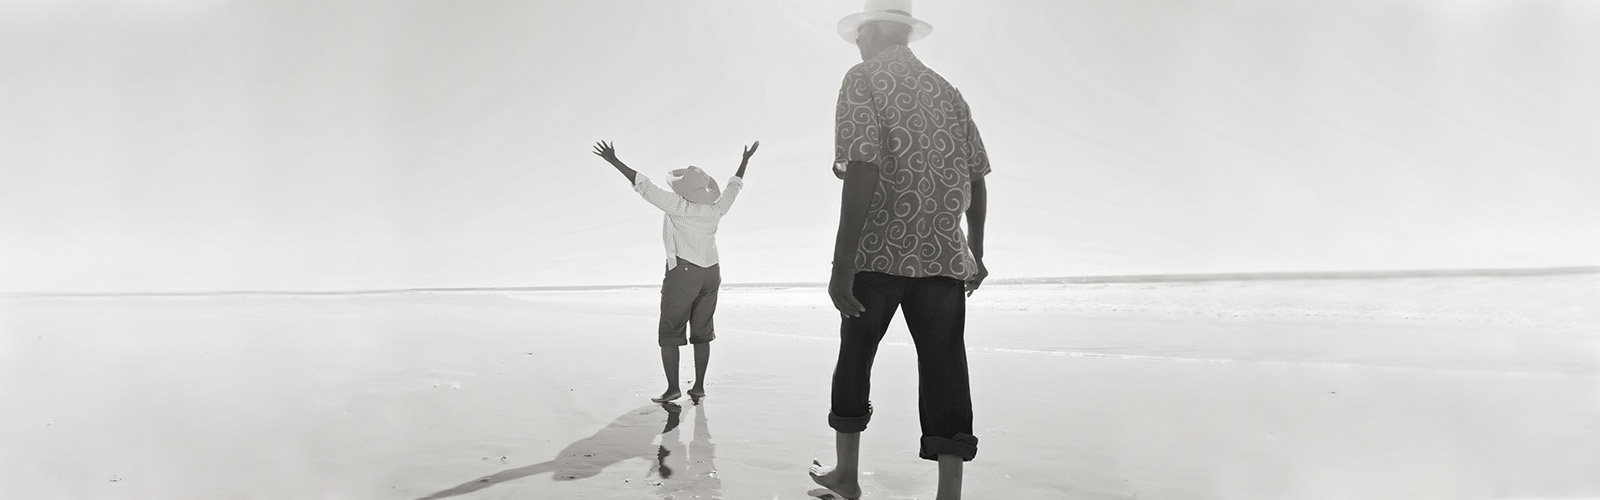 Young child walking on the beach with elderly man